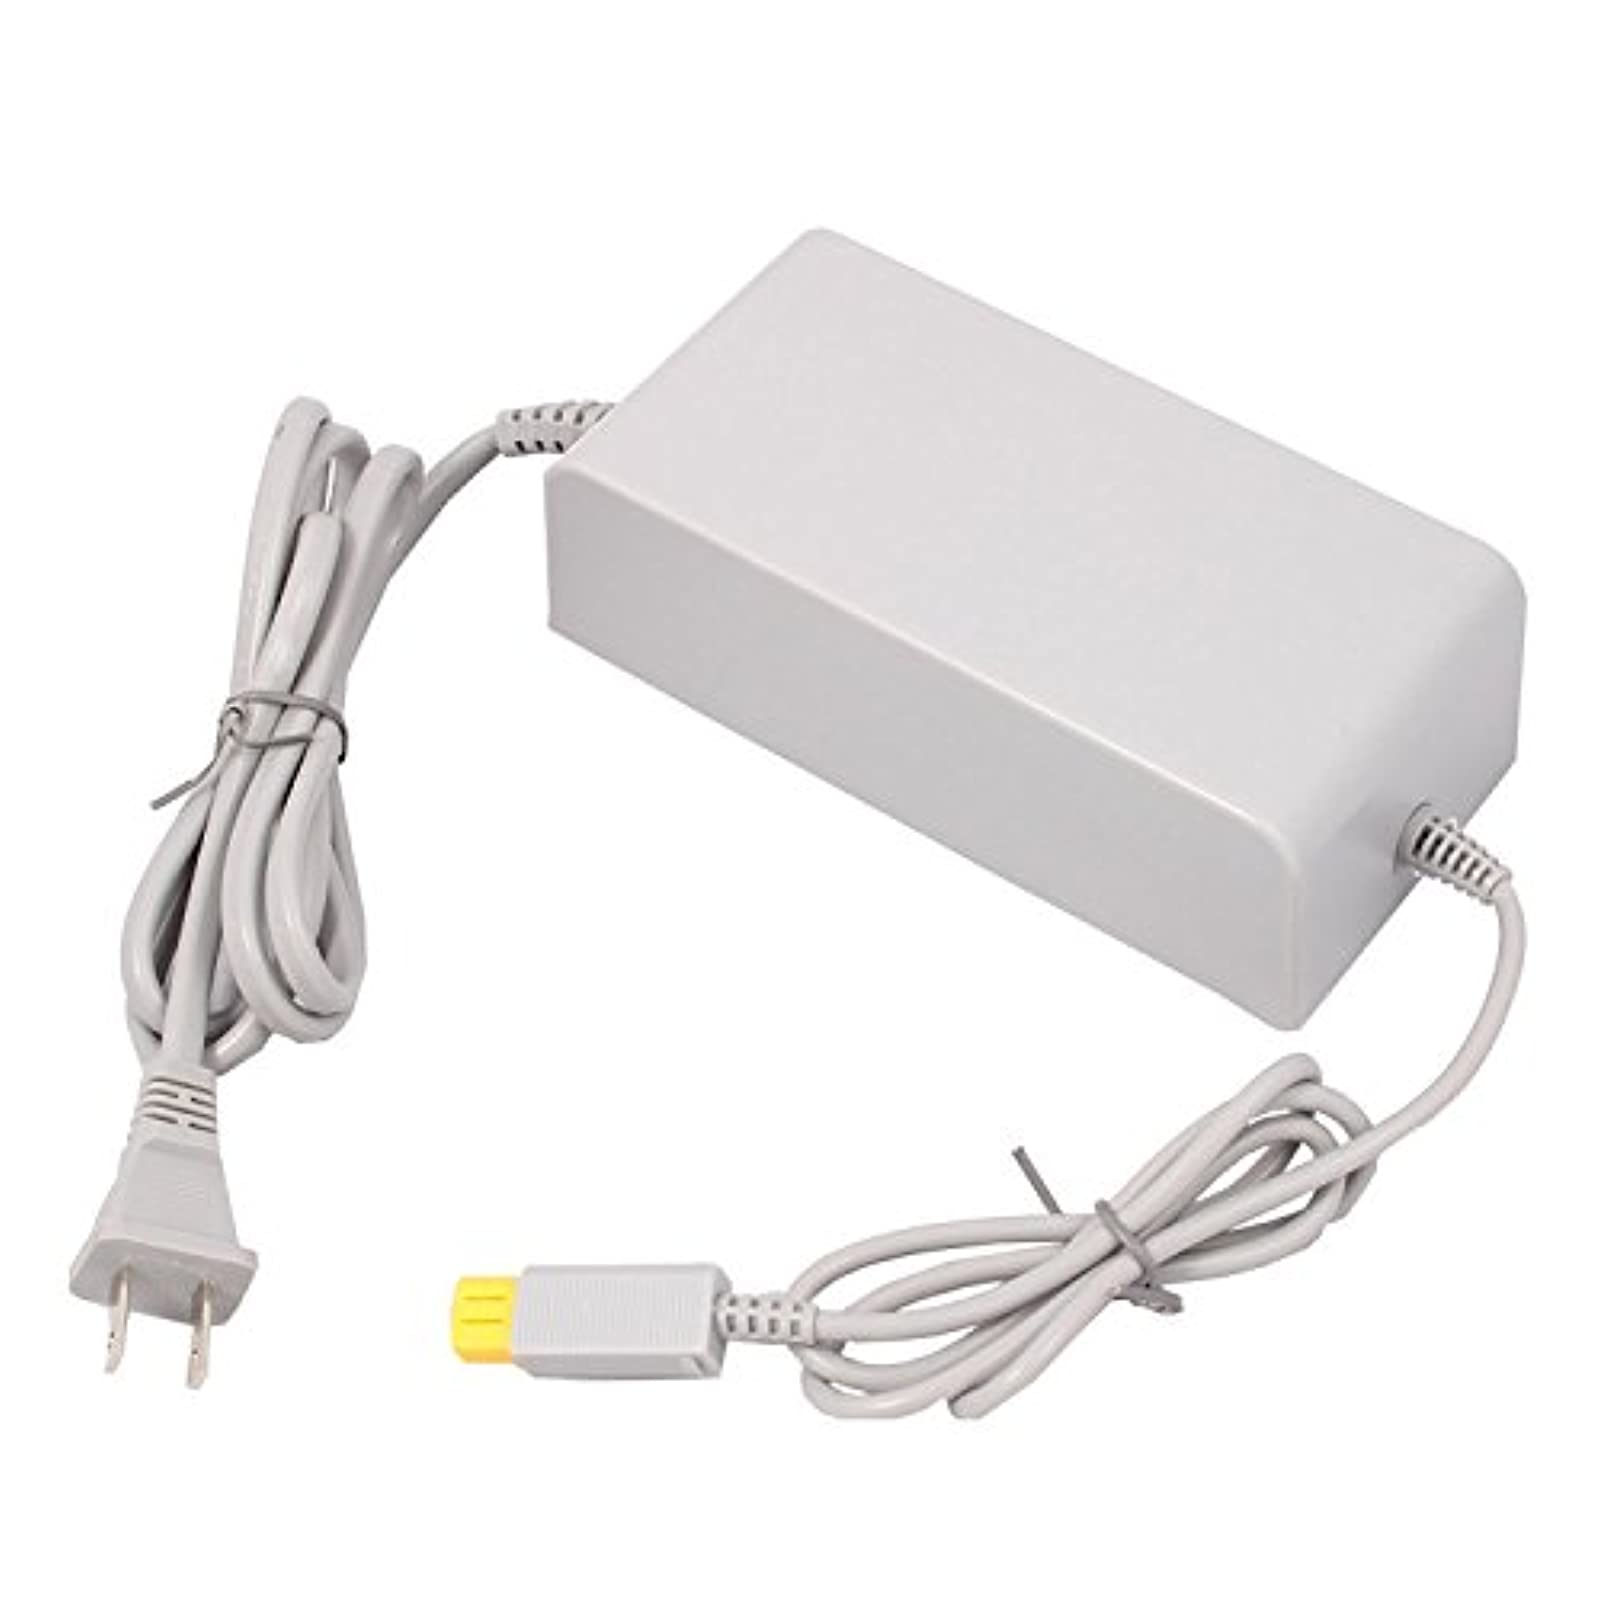 Generic Power Supply Universal 100 240V AC Adapter For Console US Plug For Wii U